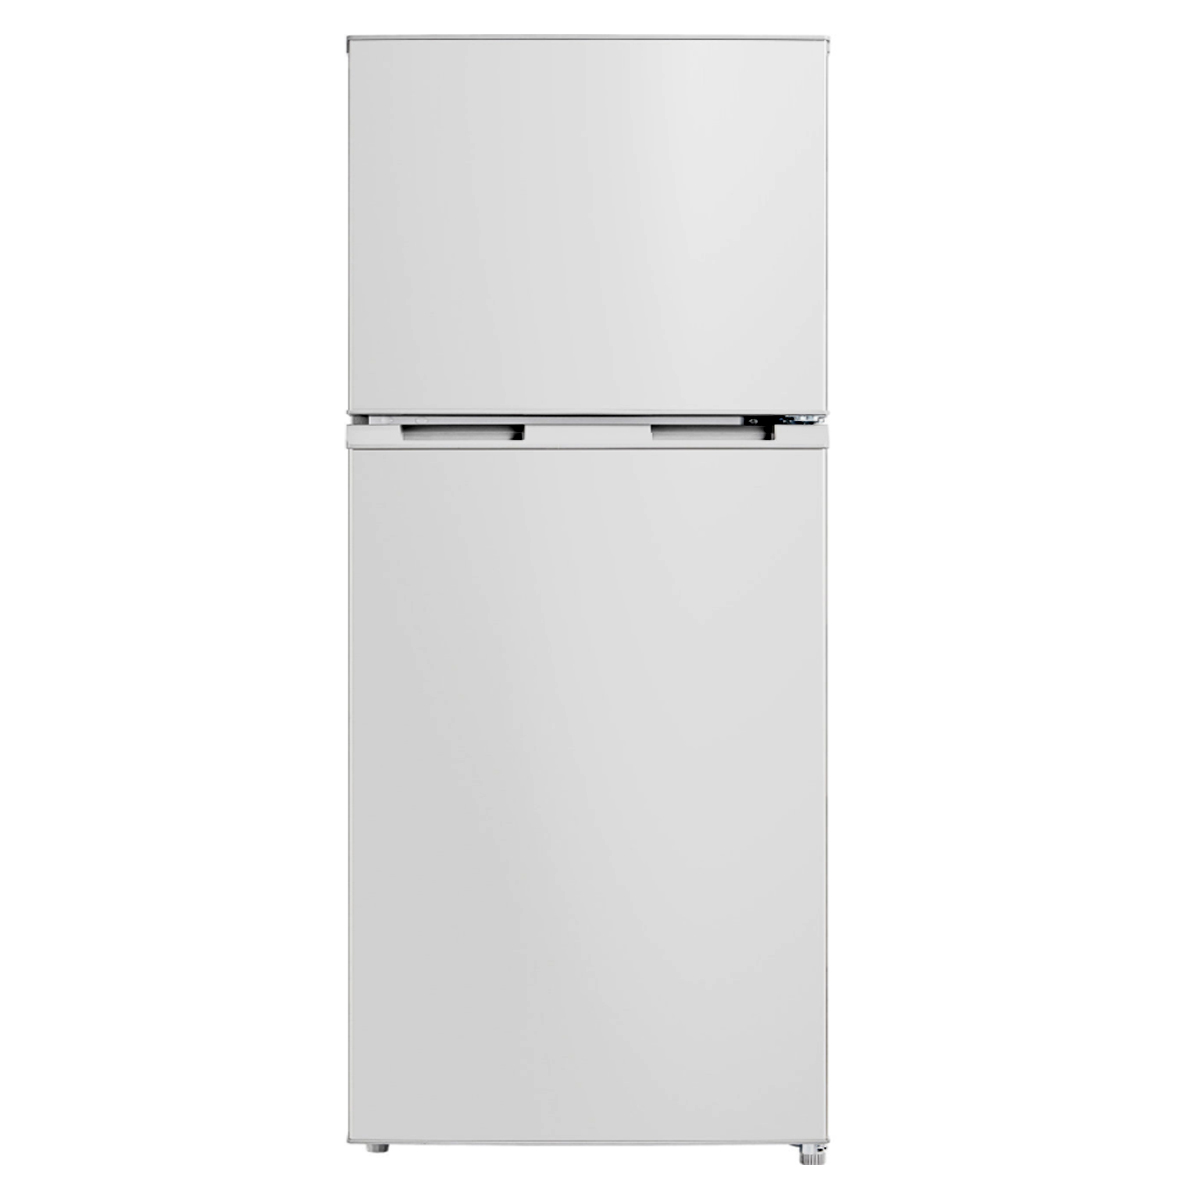 Esatto ETM239W 239L Top Mount Fridge